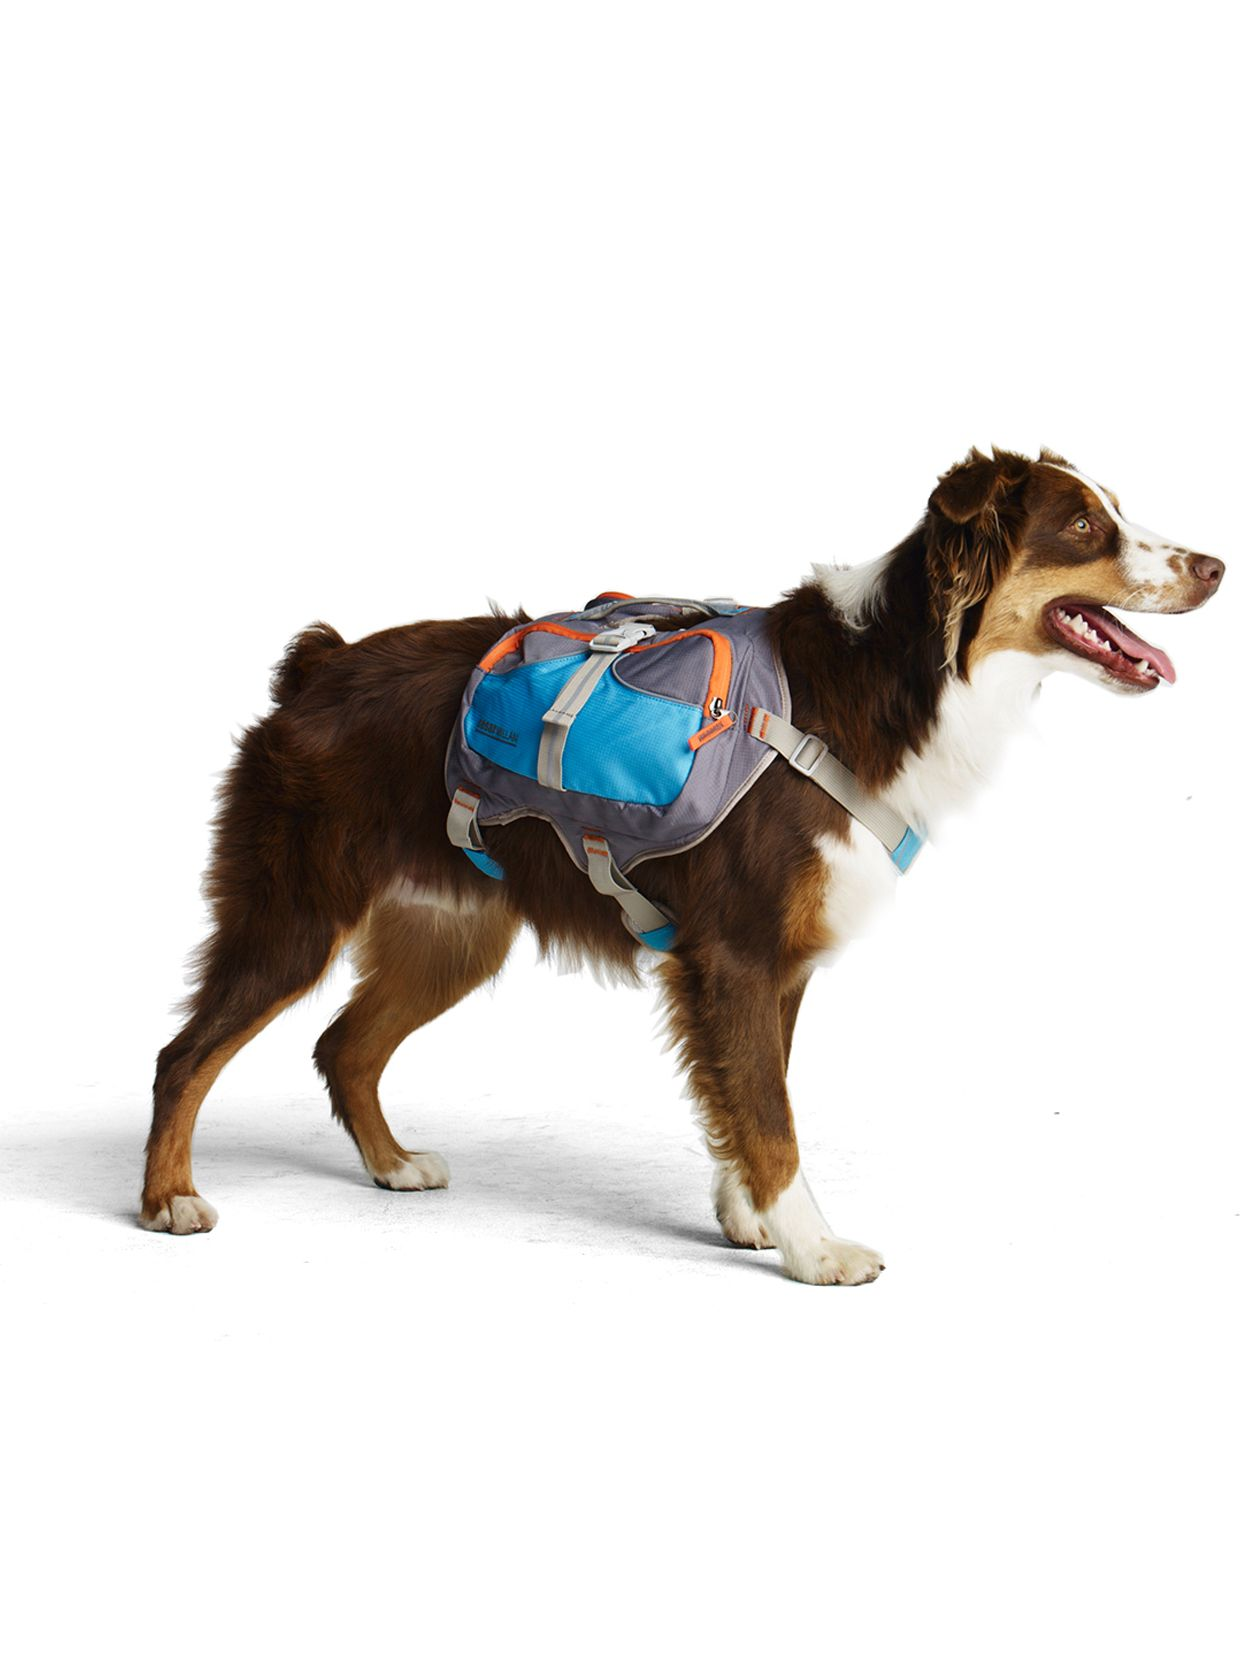 """Cesar says: """"Dogs love having jobs, and if they're focused on walking and carrying, they are much less likely to chase squirrels or bicyclists. There's nothing more therapeutic for a dog than having a job to do, and carrying a backpack is that job."""""""